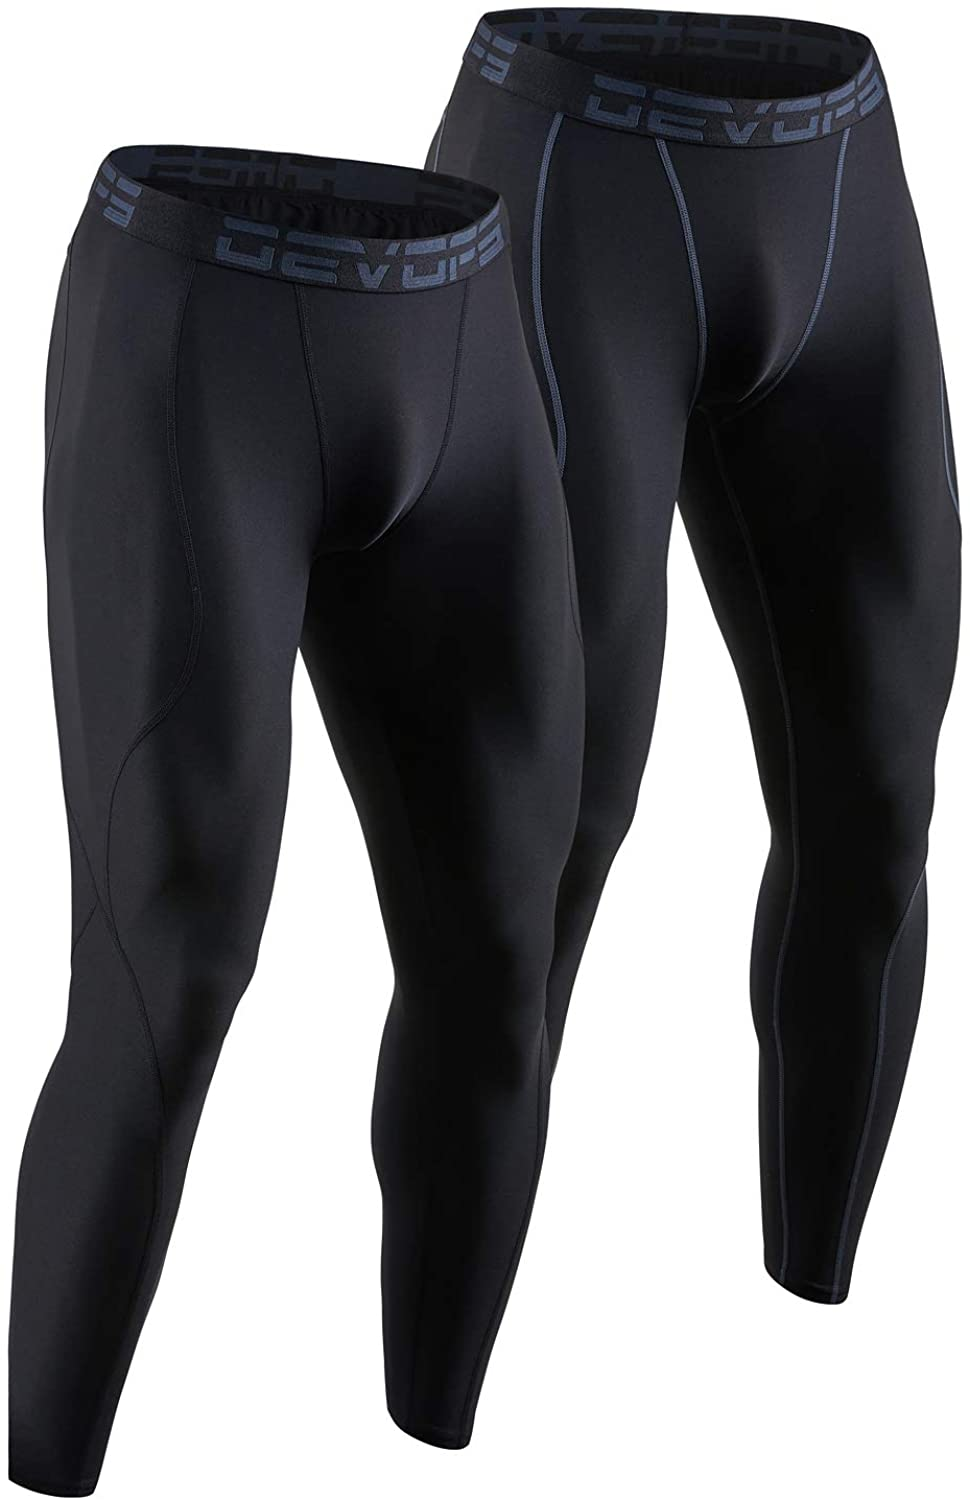 X-Large, Black//Charcoal DEVOPS Mens 2 Pack Compression Cool Dry Tights Baselayer Running Active Leggings Pants